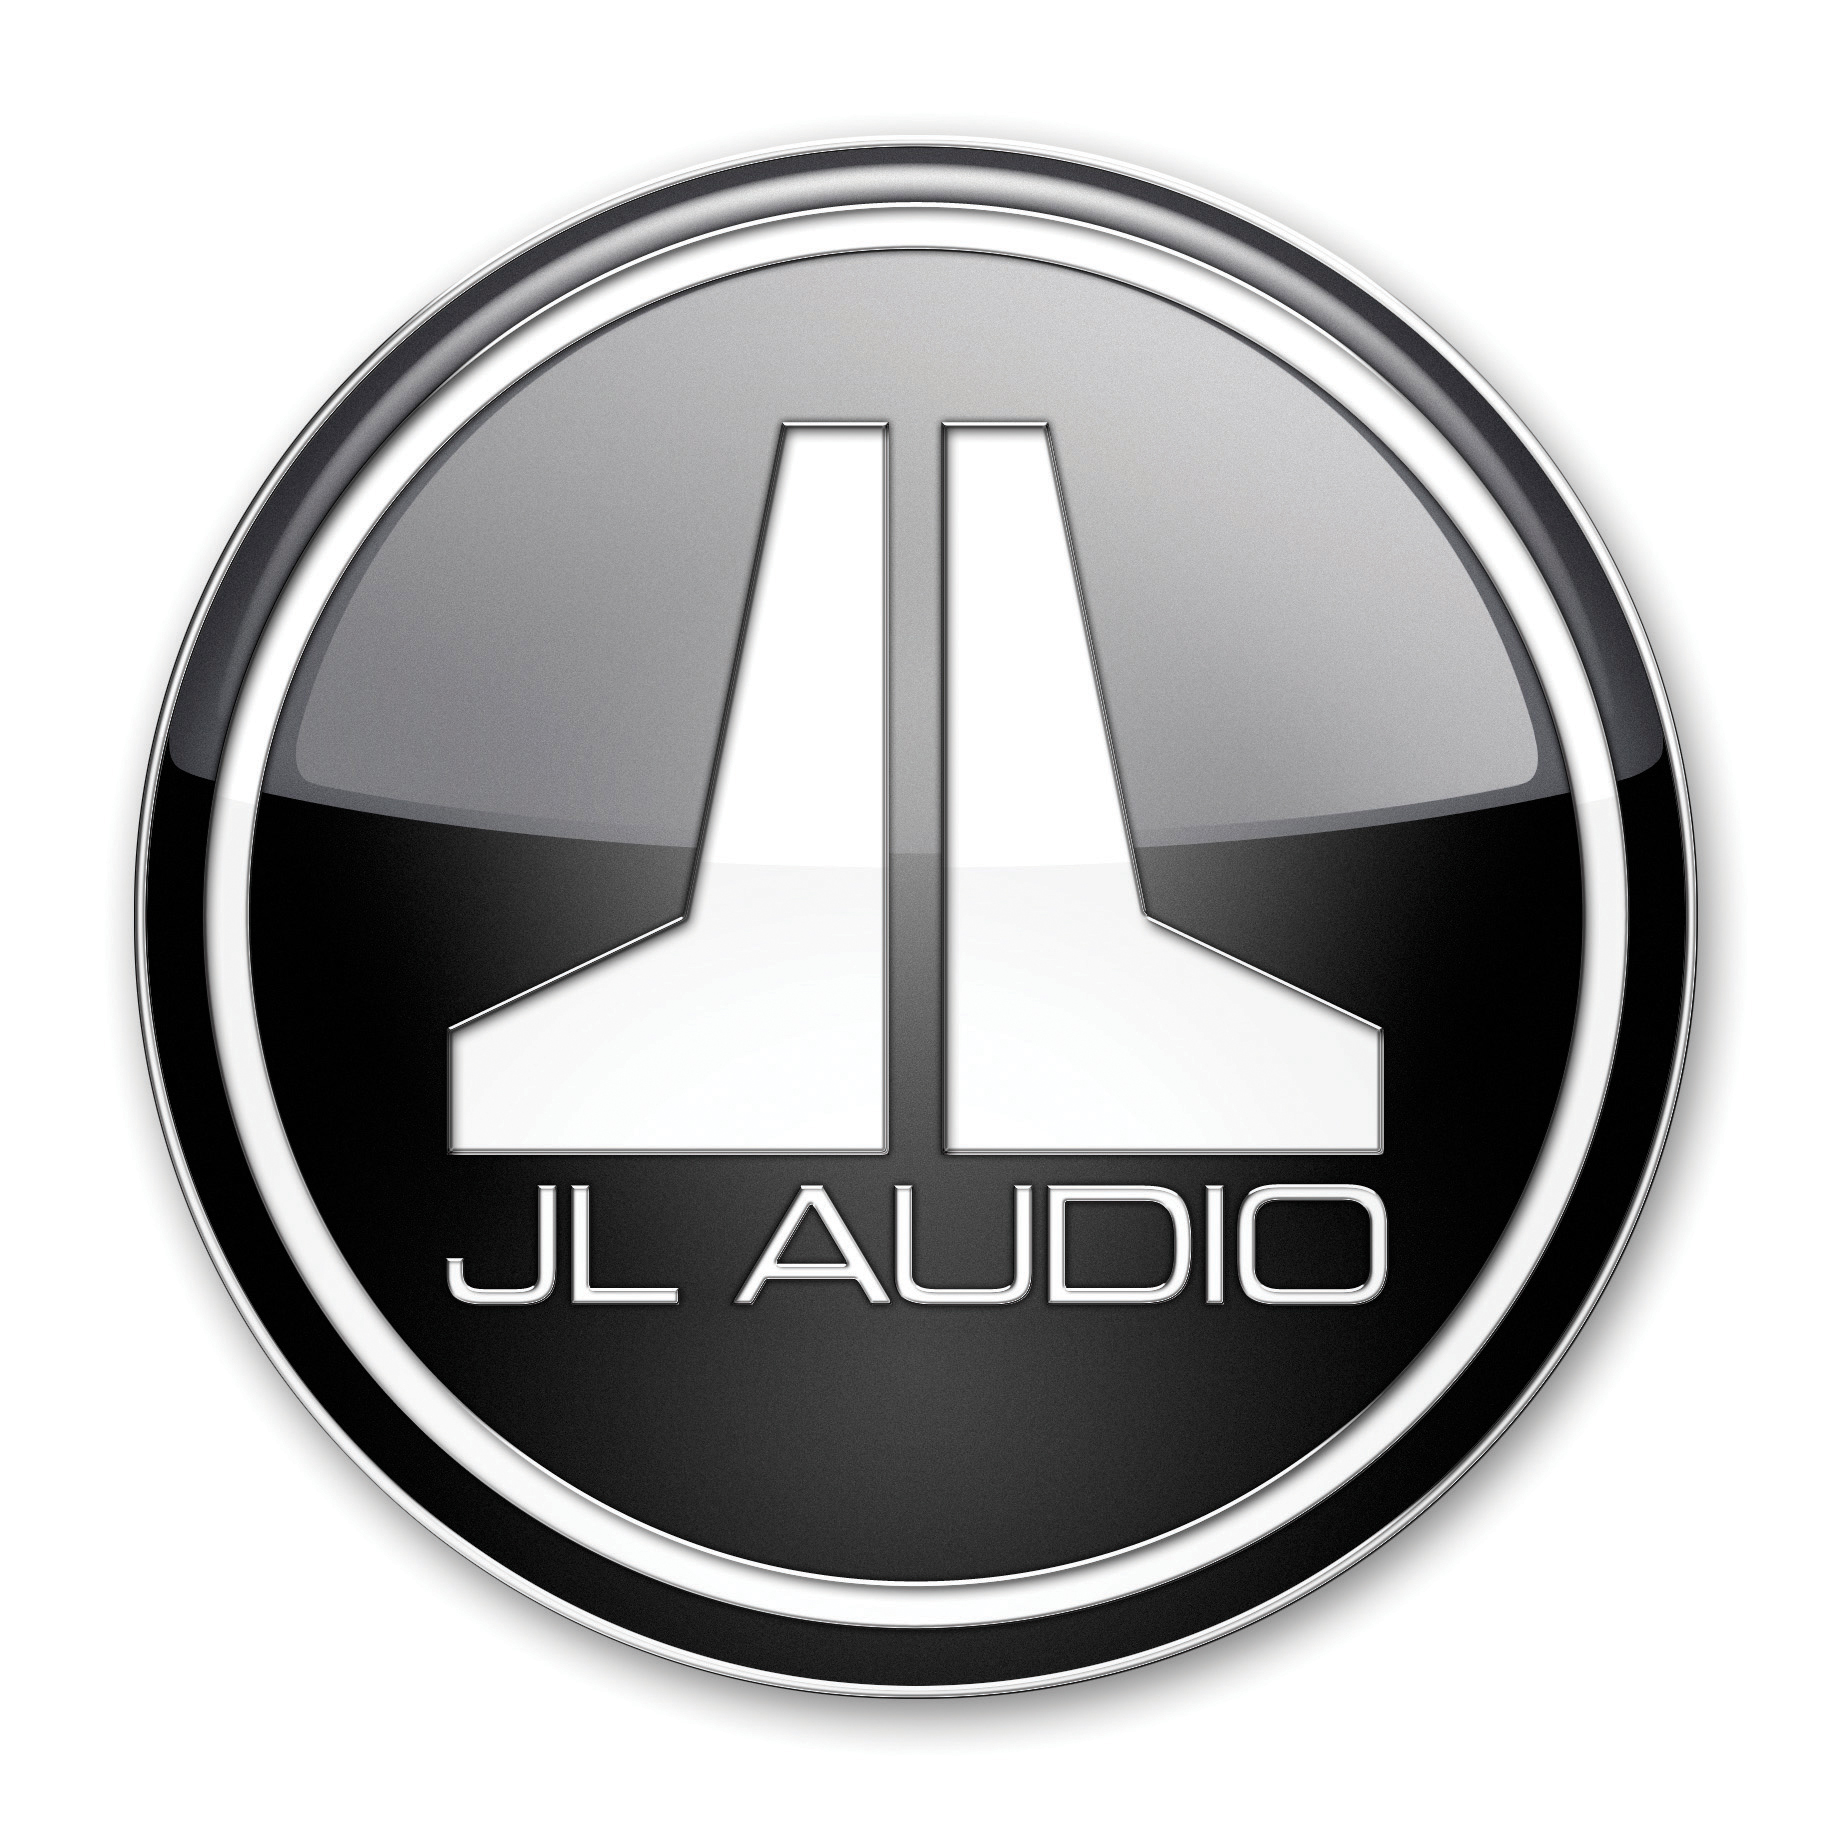 Image result for jl audio logo